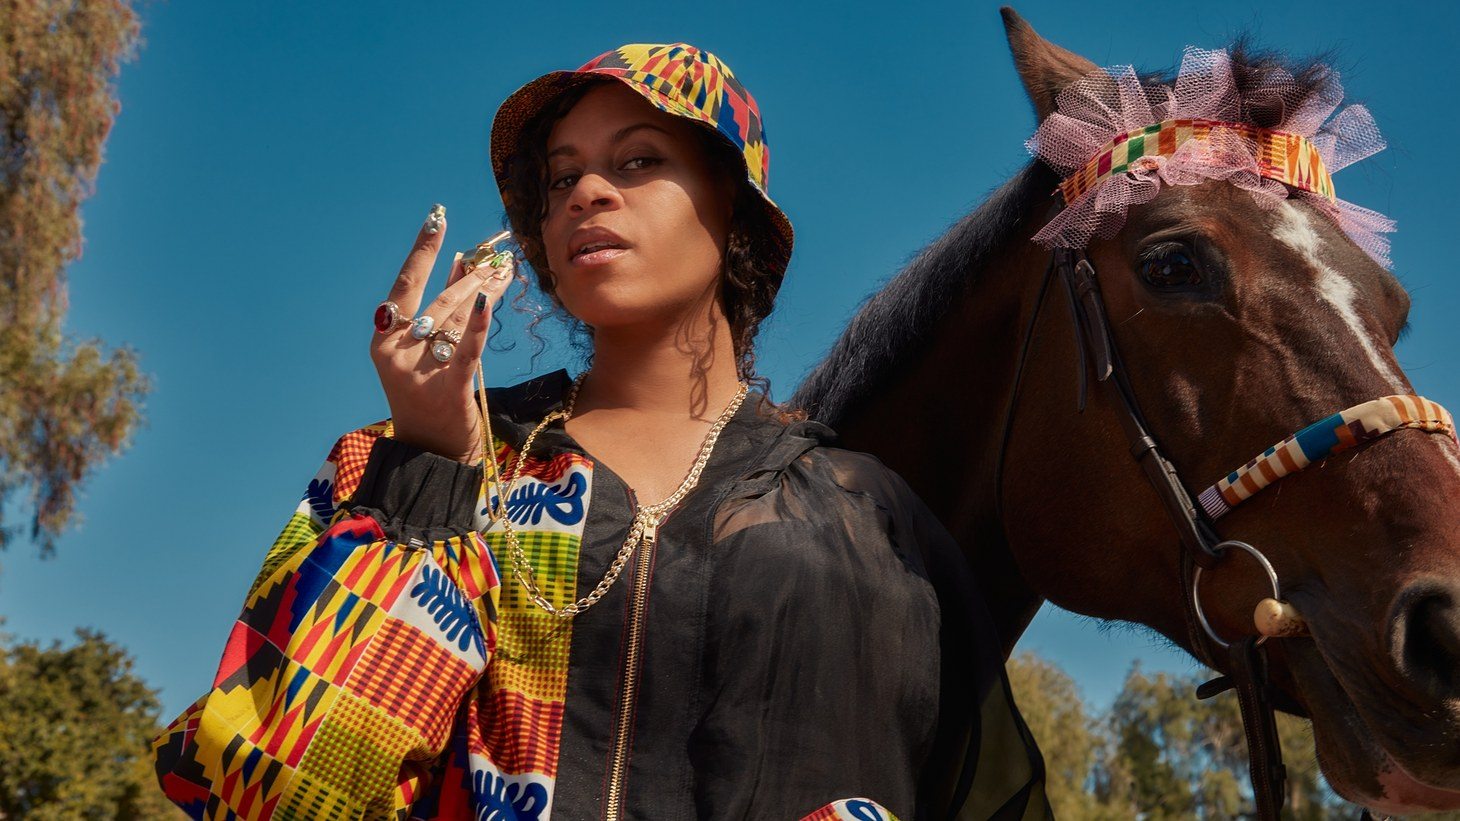 """Picture yourself driving down your favorite road, top down, as laser beams of music blast through the speakers to ritual goddess Aluna's (of AlunaGeorge) solo debut """"Body Pump."""" This sonic of    fering is built for such an occasion."""